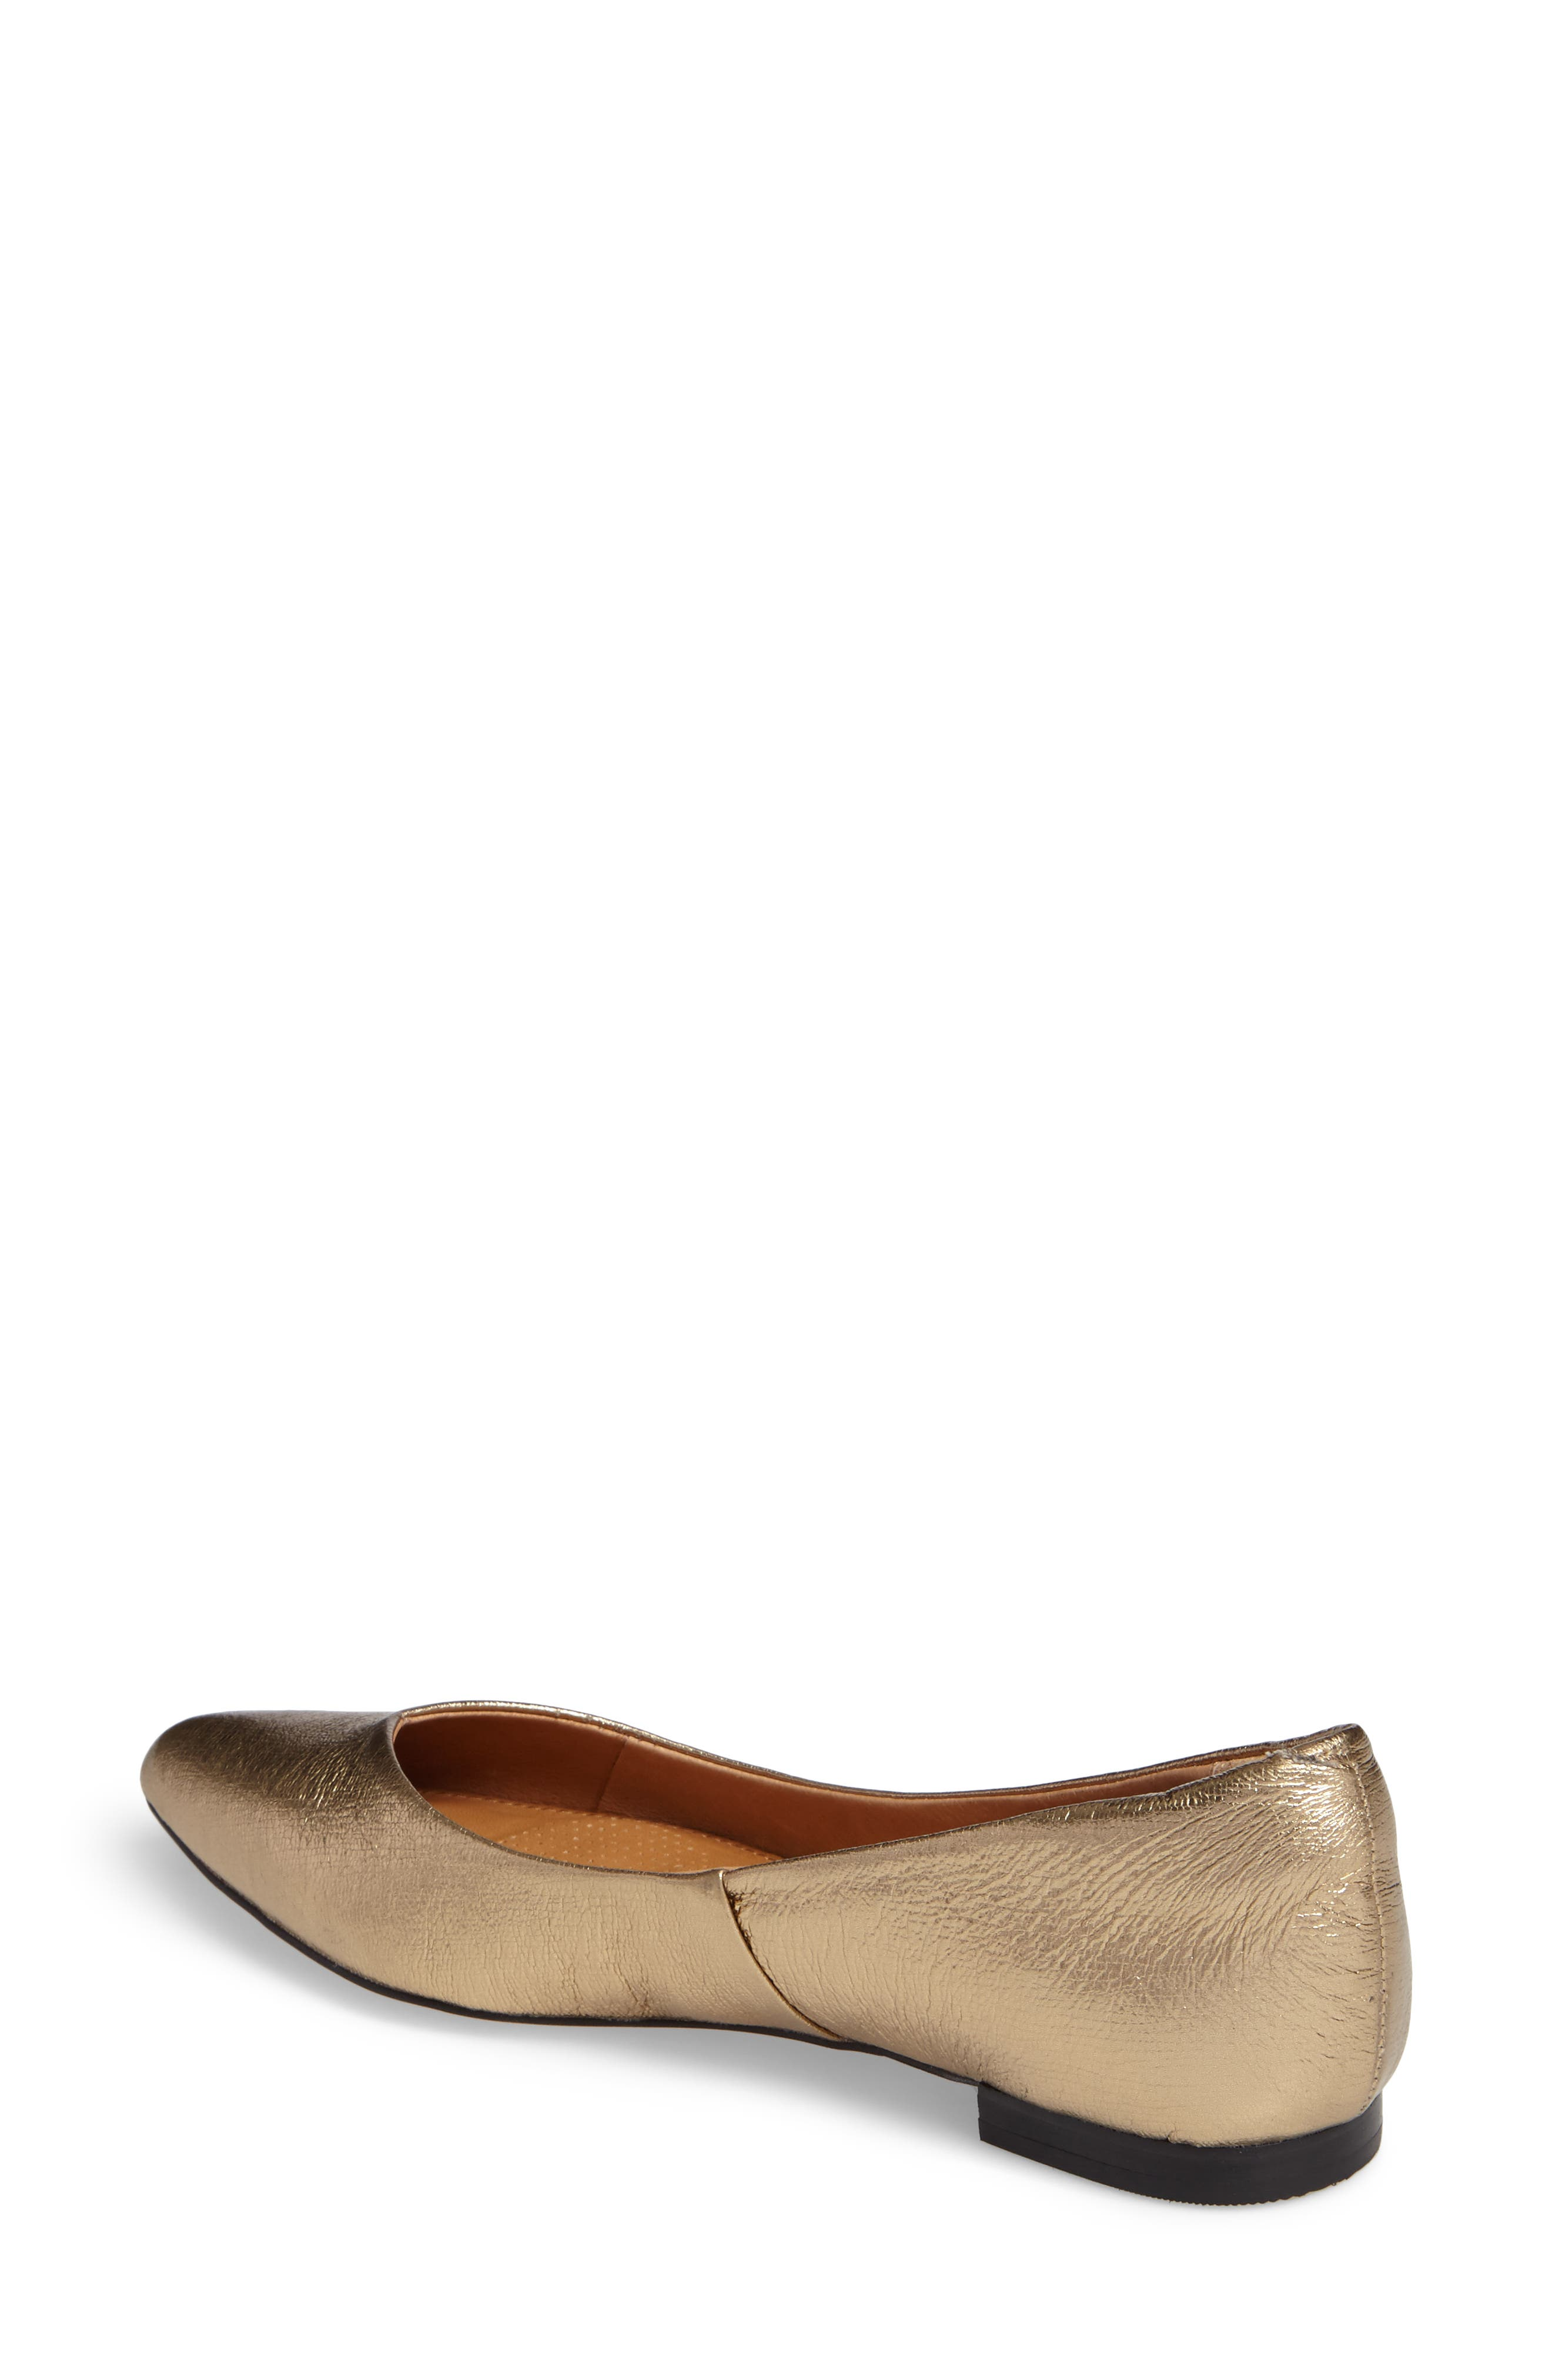 Alternate Image 2  - Corso Como Julia Pointy Toe Flat (Women)